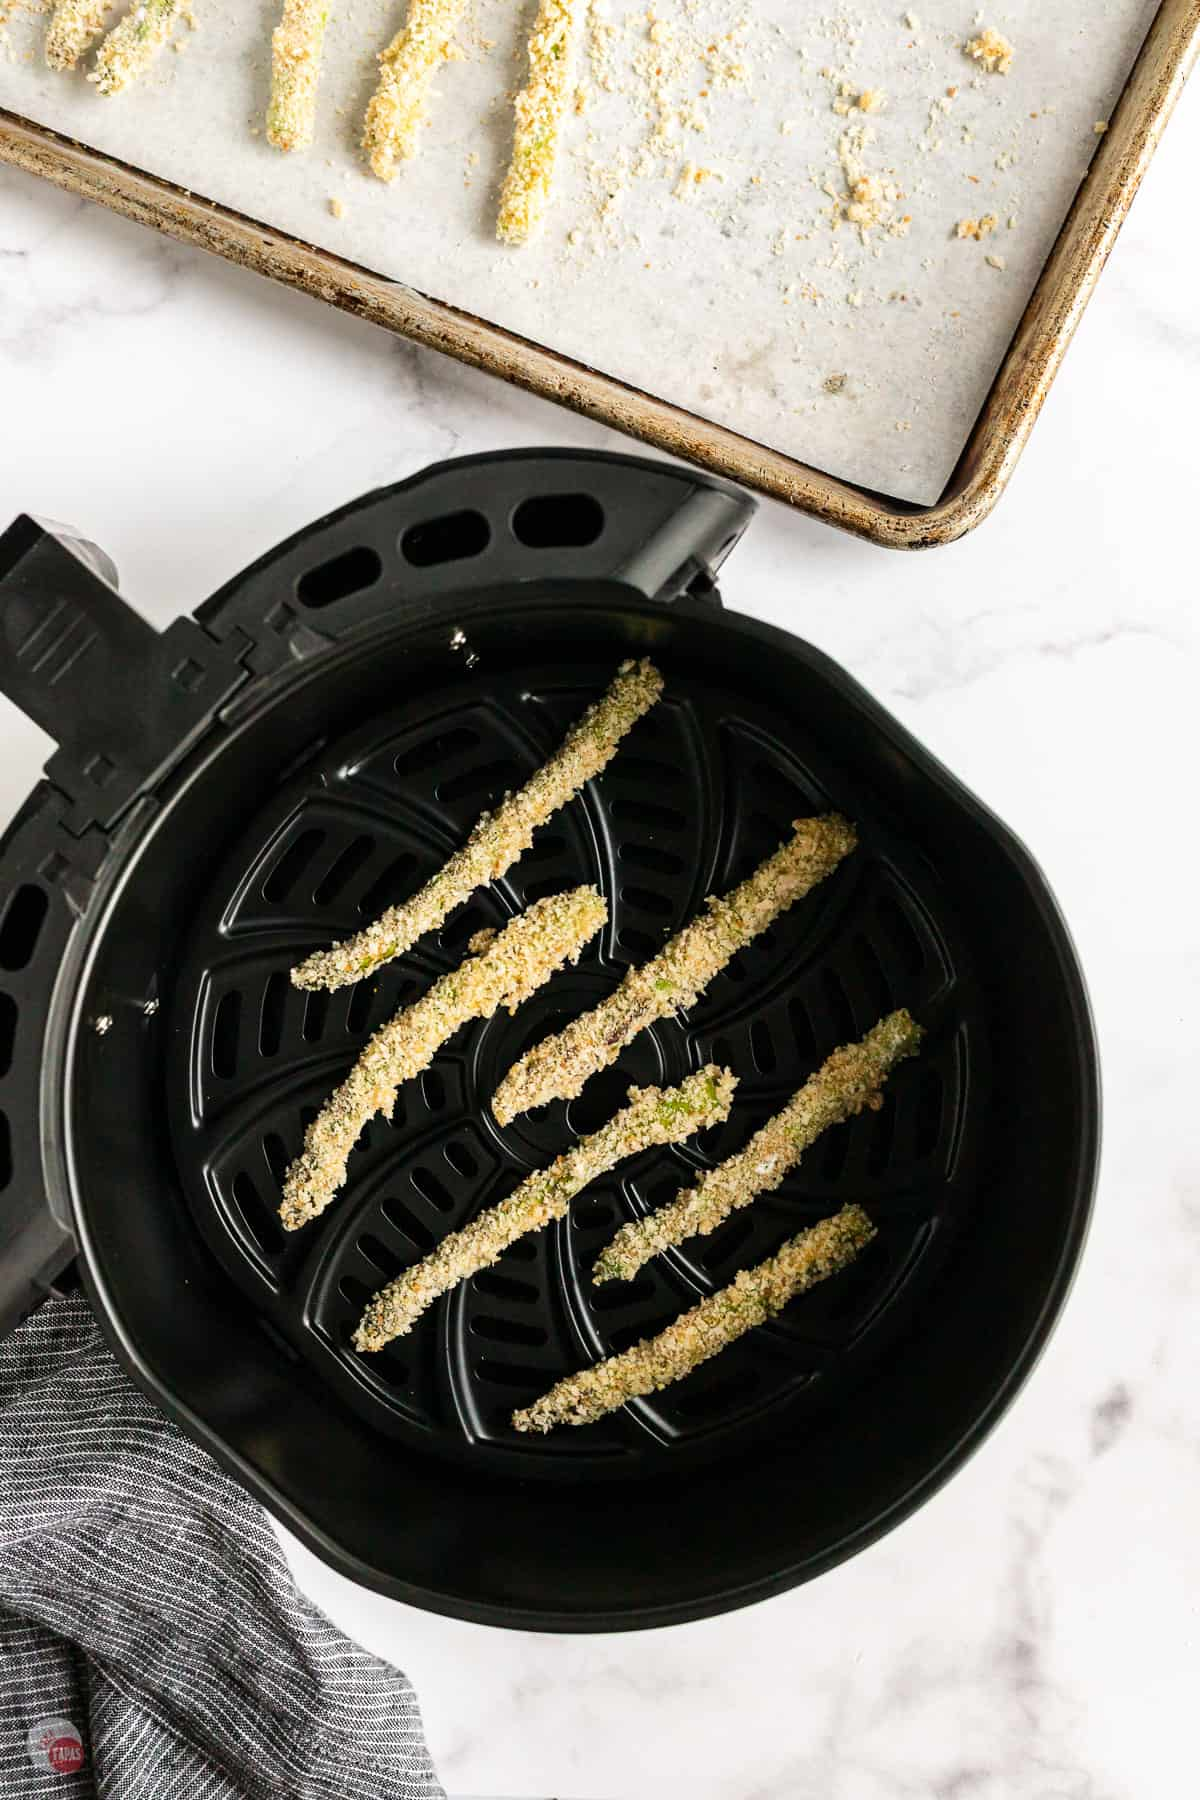 unbaked asparagus in an air fryer basket